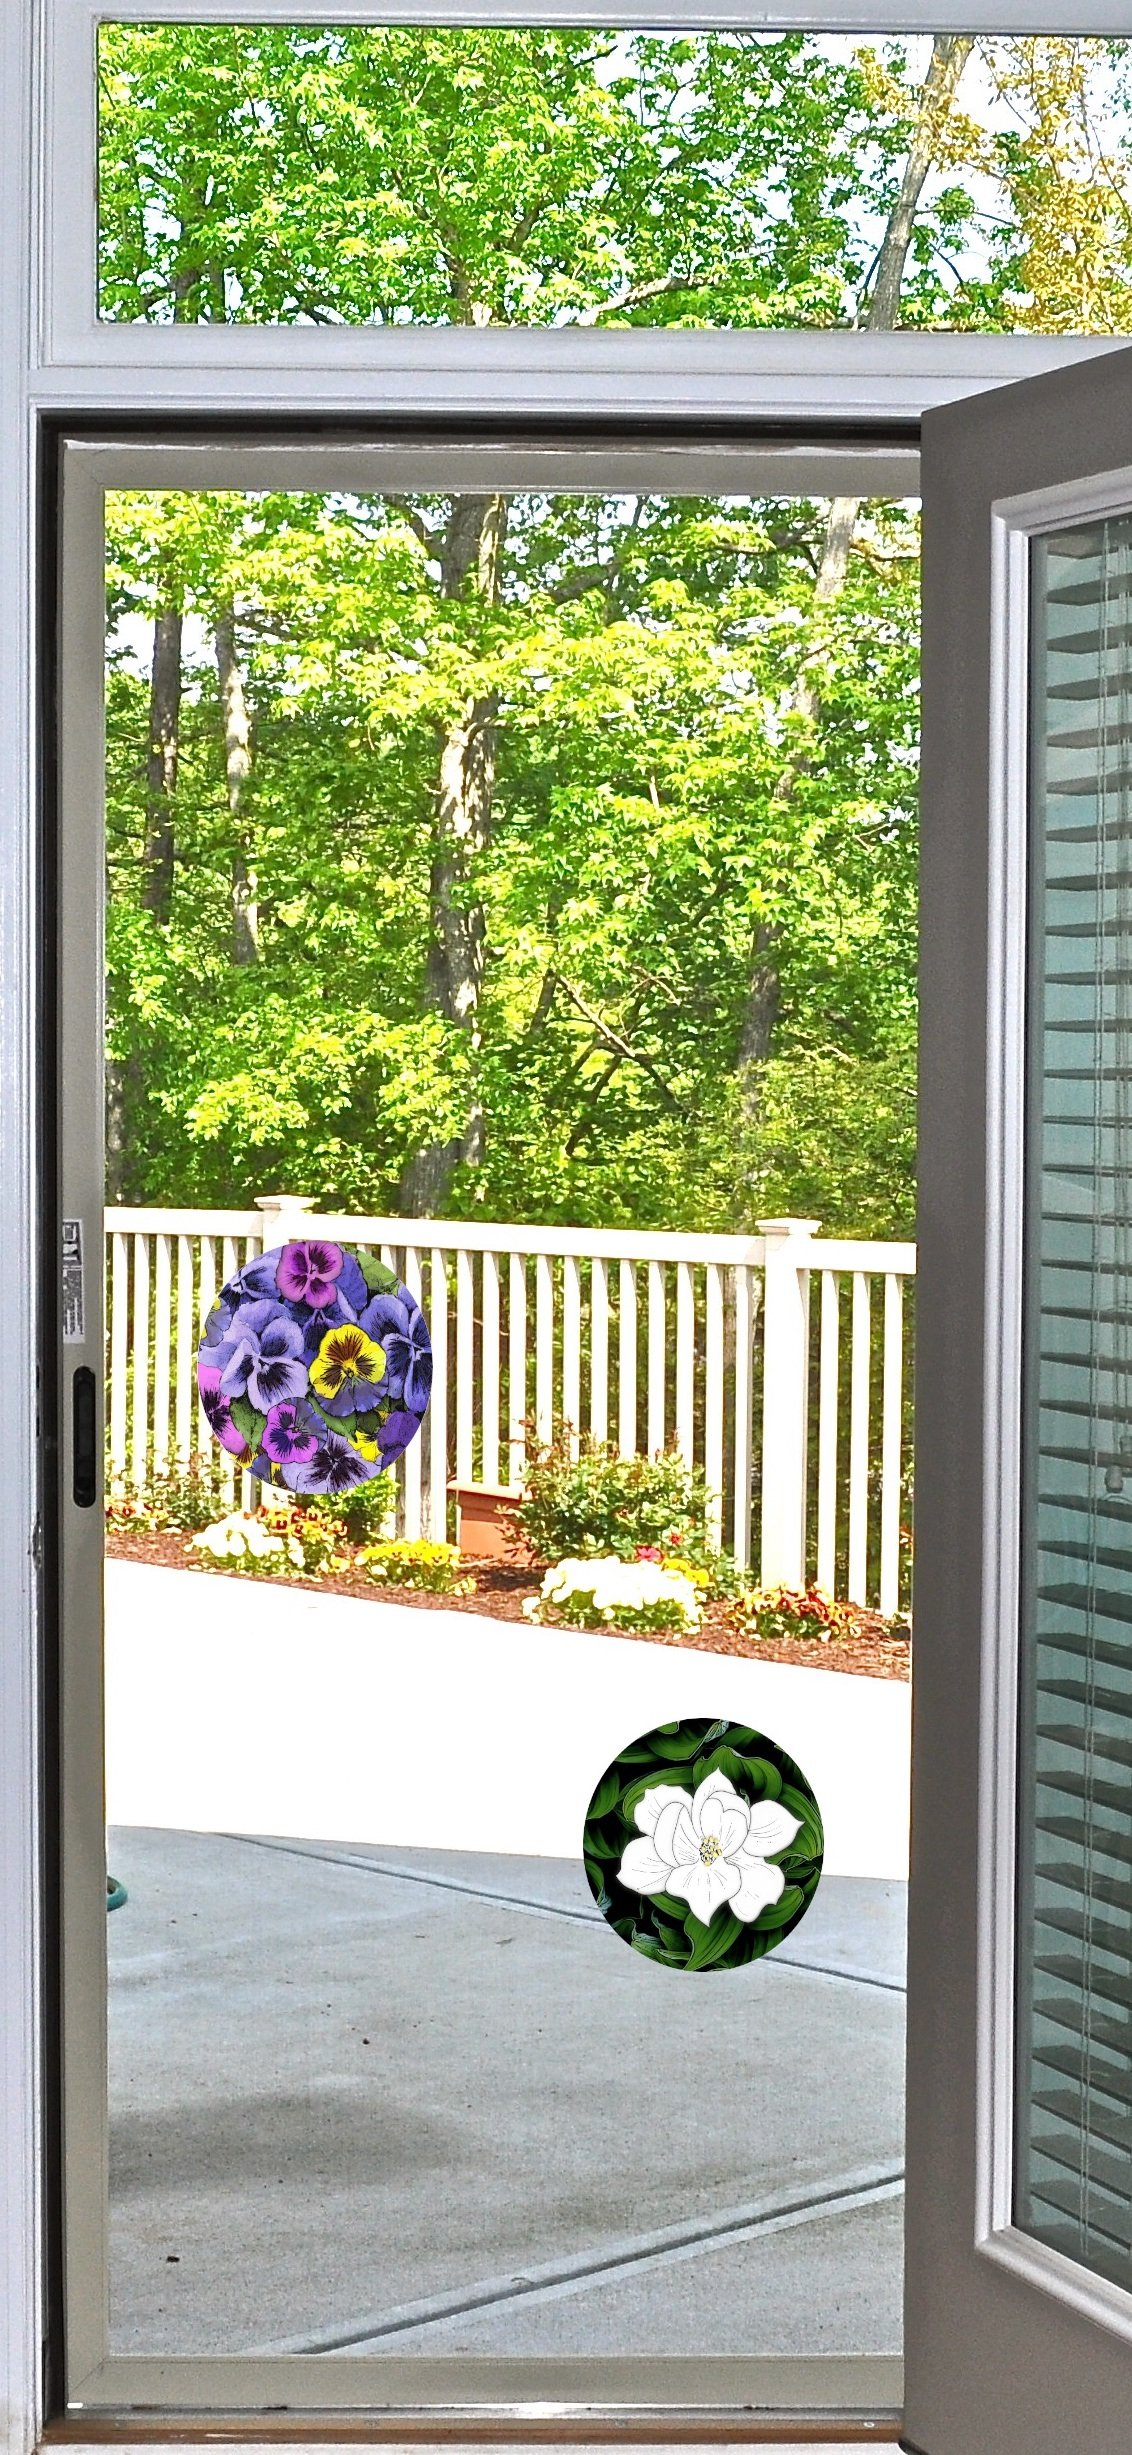 Glass Door & Window Repositionable Sticker Decal. 2 per package -Shower Doors, Alert Birds, Dogs, Kids, Guests. Warn, Protect, Safety, Removable, Self Adhesive, Bird Alert. (Rainbow Leaves)